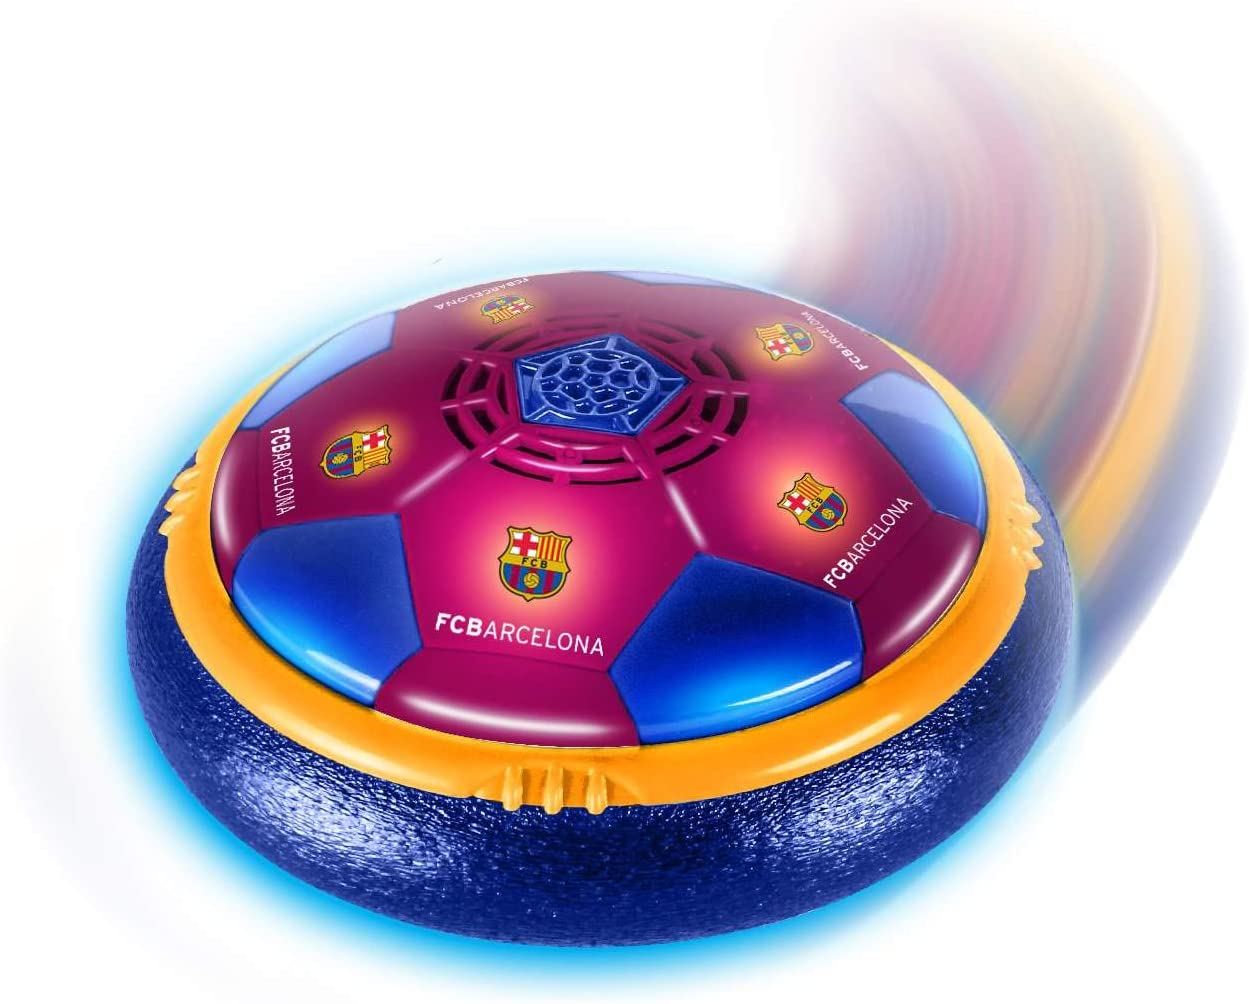 Barcelona Dd - Pelota Air Ball FC Barça, Multicolor: Amazon.es: Juguetes y juegos